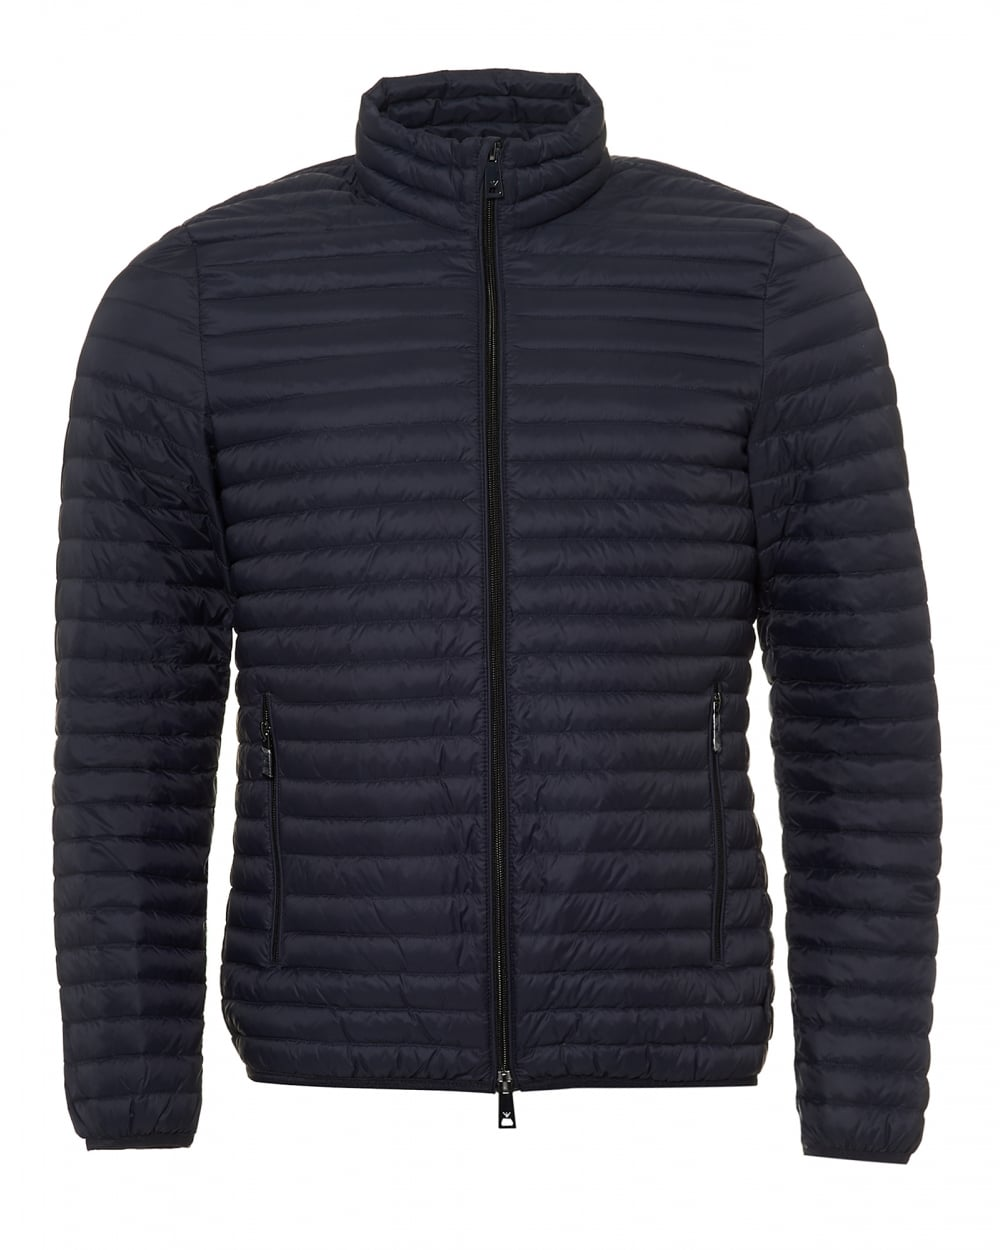 3e268b73d8b41 Emporio Armani Mens Lightweight Quilted Jacket